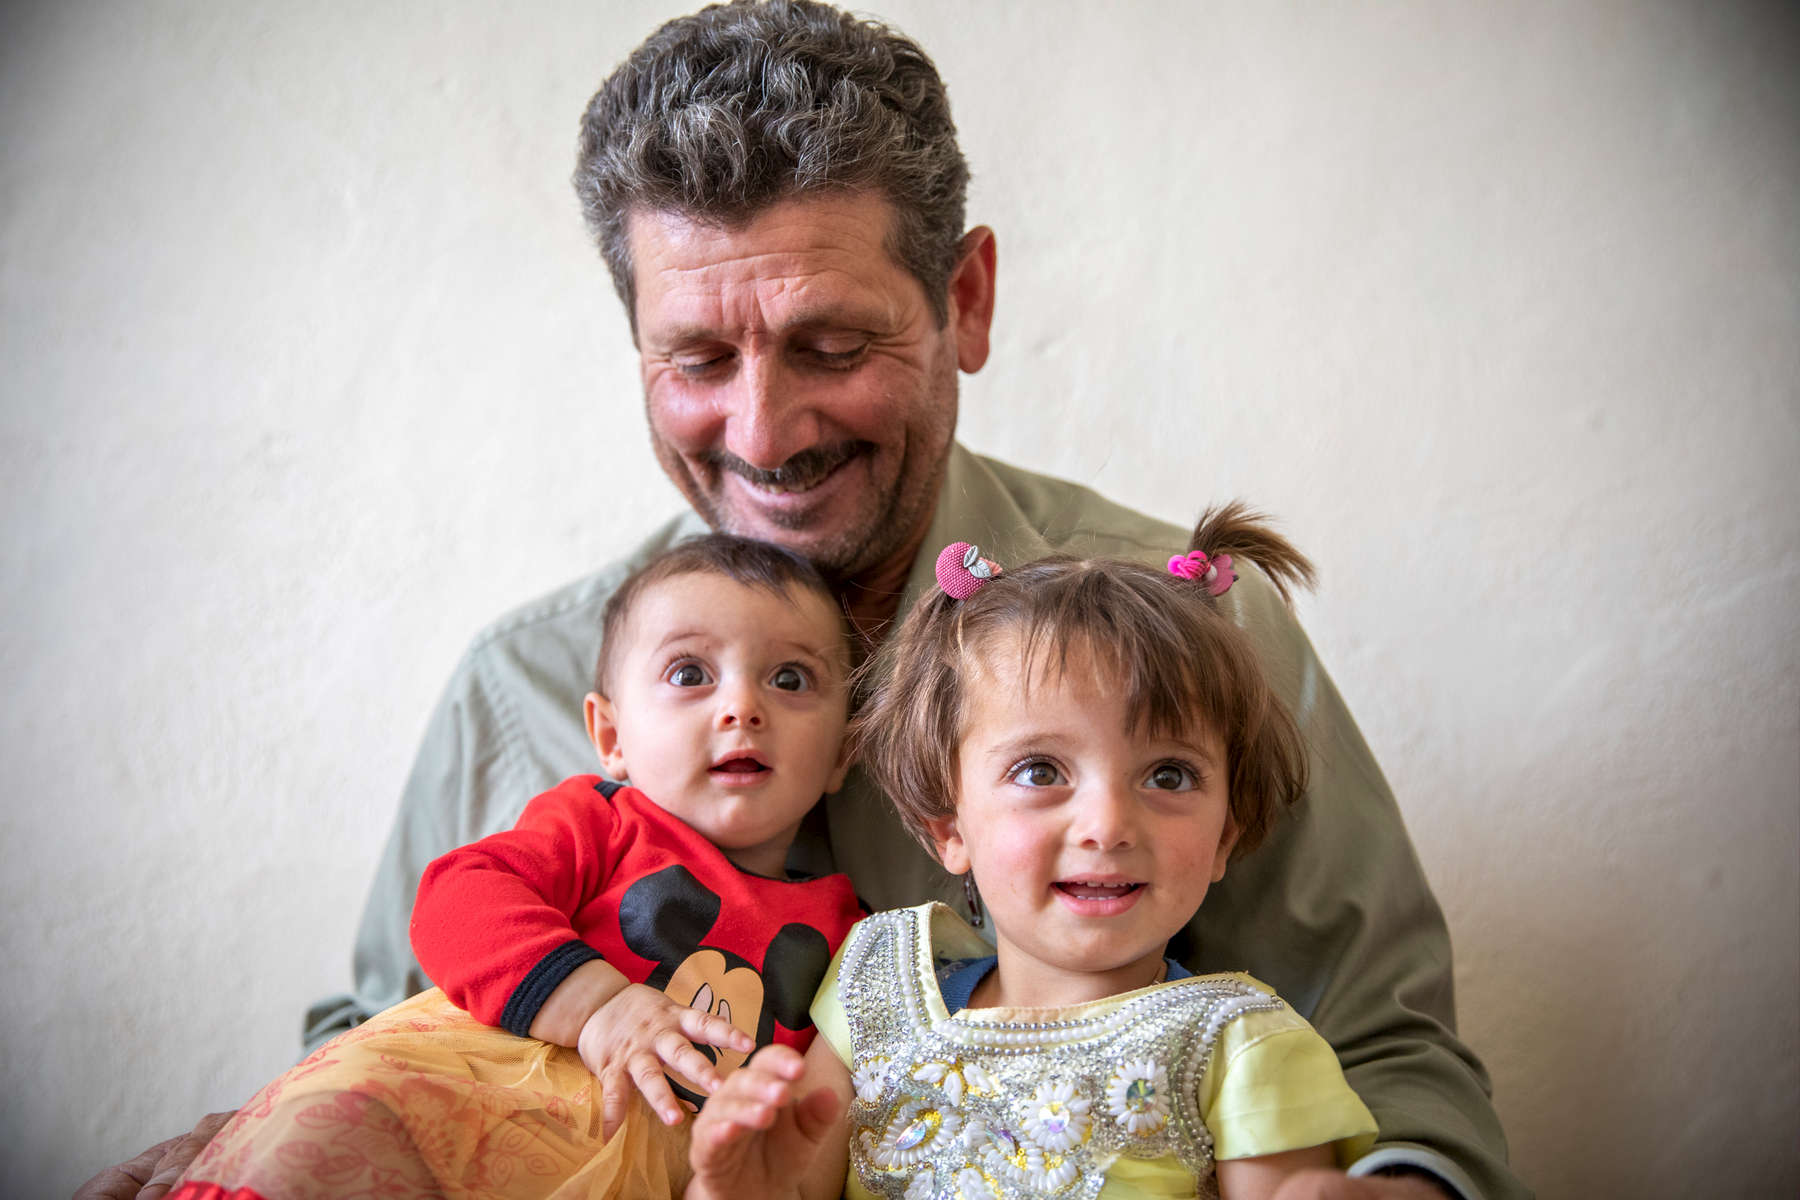 "Ahmad, 51, holds his granddaughters Zinab, 2, and Bilasan, 6 months. They are Syrian refugees living in an informal tent settlement. They fled Syria in 2012 when a bomb destroyed their home. Since then, they have lived in a tent community with 23 other families, where Ahmad built a schoolhouse that teaches more than 40 Syrian kids.Ahmad was a farmer back in Syria, but when he saw how none of the children in this community could read or write, he decided to be their teacher. The walls of his classroom are covered in posters teaching English, Arabic, science and math, while the ceiling is decorated with recycled materials the children gathered. ""I try to put hope for the children here. So I'm proud of what I did,"" he says.More than 700,000 Syrian refugee children are out of school. Ahmad built this classroom so that when the time comes for the kids in his community to return to Syria, they'll be ready to pick up their education again. ""I built everything here by myself,"" he says. ""I started this to teach children here, because if I didn't, they would take their own direction in their life and do the wrong thing, like drugs or going to the streets. Children in this generation are our future. Because of that, I started this school.""Ahmad's school teaches children ranging from ages 5 to 13. They meet from 8 a.m. to noon, six days a week. At first there were no chairs, and the students sat on rocks in the sand. The community pulled together to help buy carpet, stools, and school materials. ""It's a benefit for everyone here,"" he says.Ahmad uses Khabrona, a digital platform built by Mercy Corps and Cisco to help refugees access critical services through their cell phones. Once he used the app, he was able to get documentation for his son to live legally in the country. ""I felt relief,"" he says. ""I felt like I was legal because I could go back and forth and my child could go back and forth …  This program really helped a lot of families."" Ahmad lives about 13 miles from the Syrian border—close enough to hear the sound of airstrikes in the distance. The sound is a reminder of the life he used to have and the struggles he's endured for his family's safety. ""I used to own a farm, now I'm working for a farmer. I used to make people work for me and respect them, now I'm working for someone who doesn't respect me,"" he says. ""It was really hard. We have a lot of depression.""Ahmad has a close relationship with the kids in his school, who call him Teacher or Uncle. When the kids hear the airstrikes, they often come to him to ask him to explain it. ""Most of the children actually didn't live this, so at first they didn't know,"" he says. ""They thought it was fireworks. But after they go back to their parents and start to see the news, they come back to me and ask me about it, ""We saw the news and people died and everything."" I tried to make the picture better, but you can't. I tried, but it will stay a black picture because someone died."""